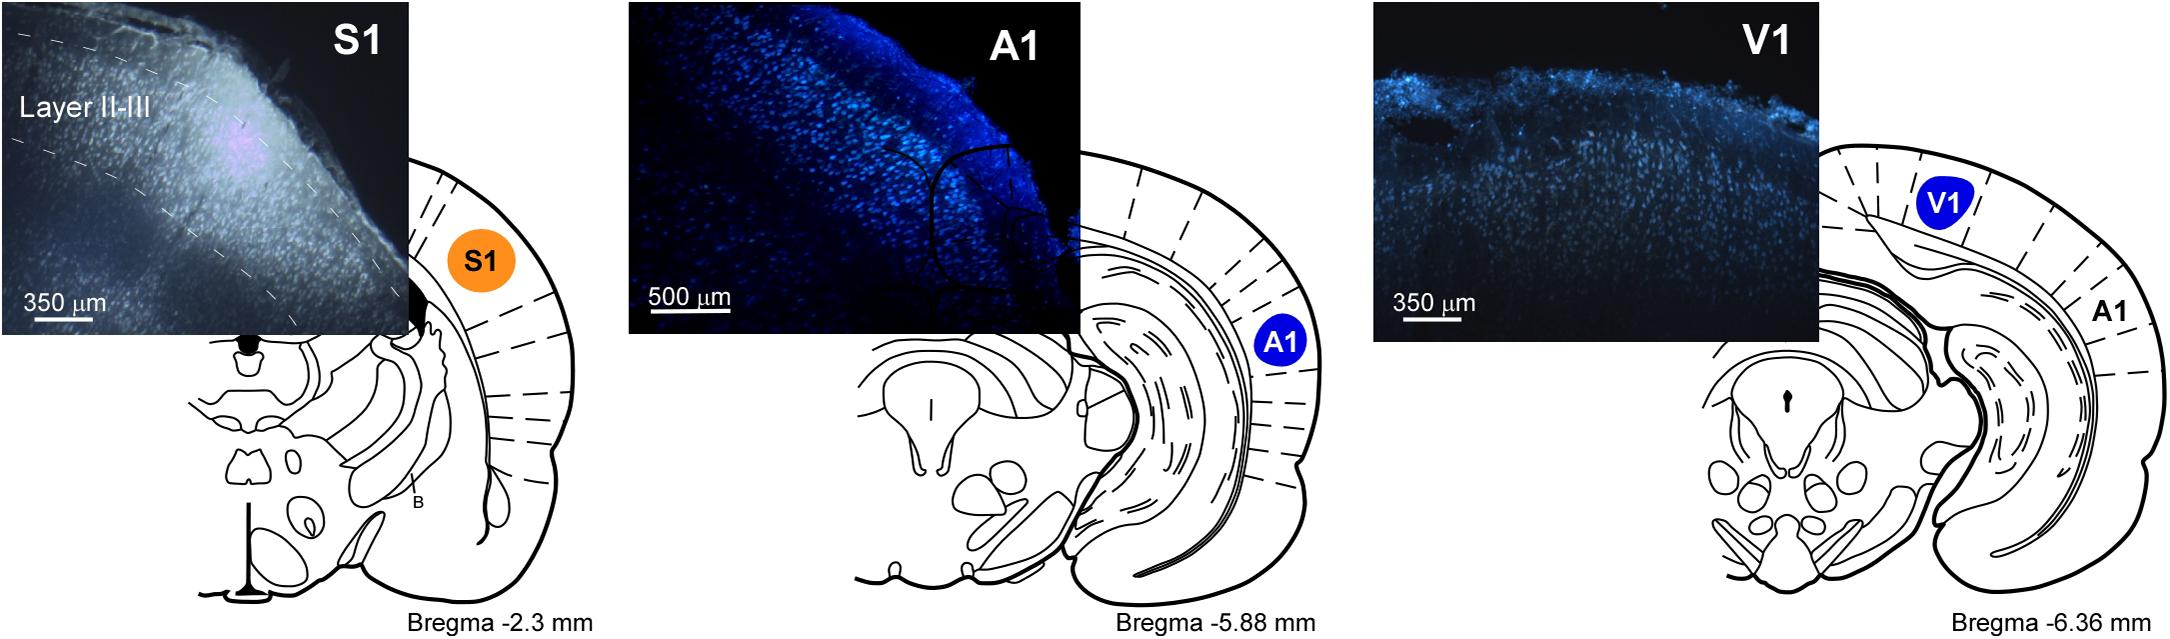 Frontiers Basal Forebrain Nuclei Display Distinct Projecting Pb30 Wiring Diagram Figure 1 Schematic